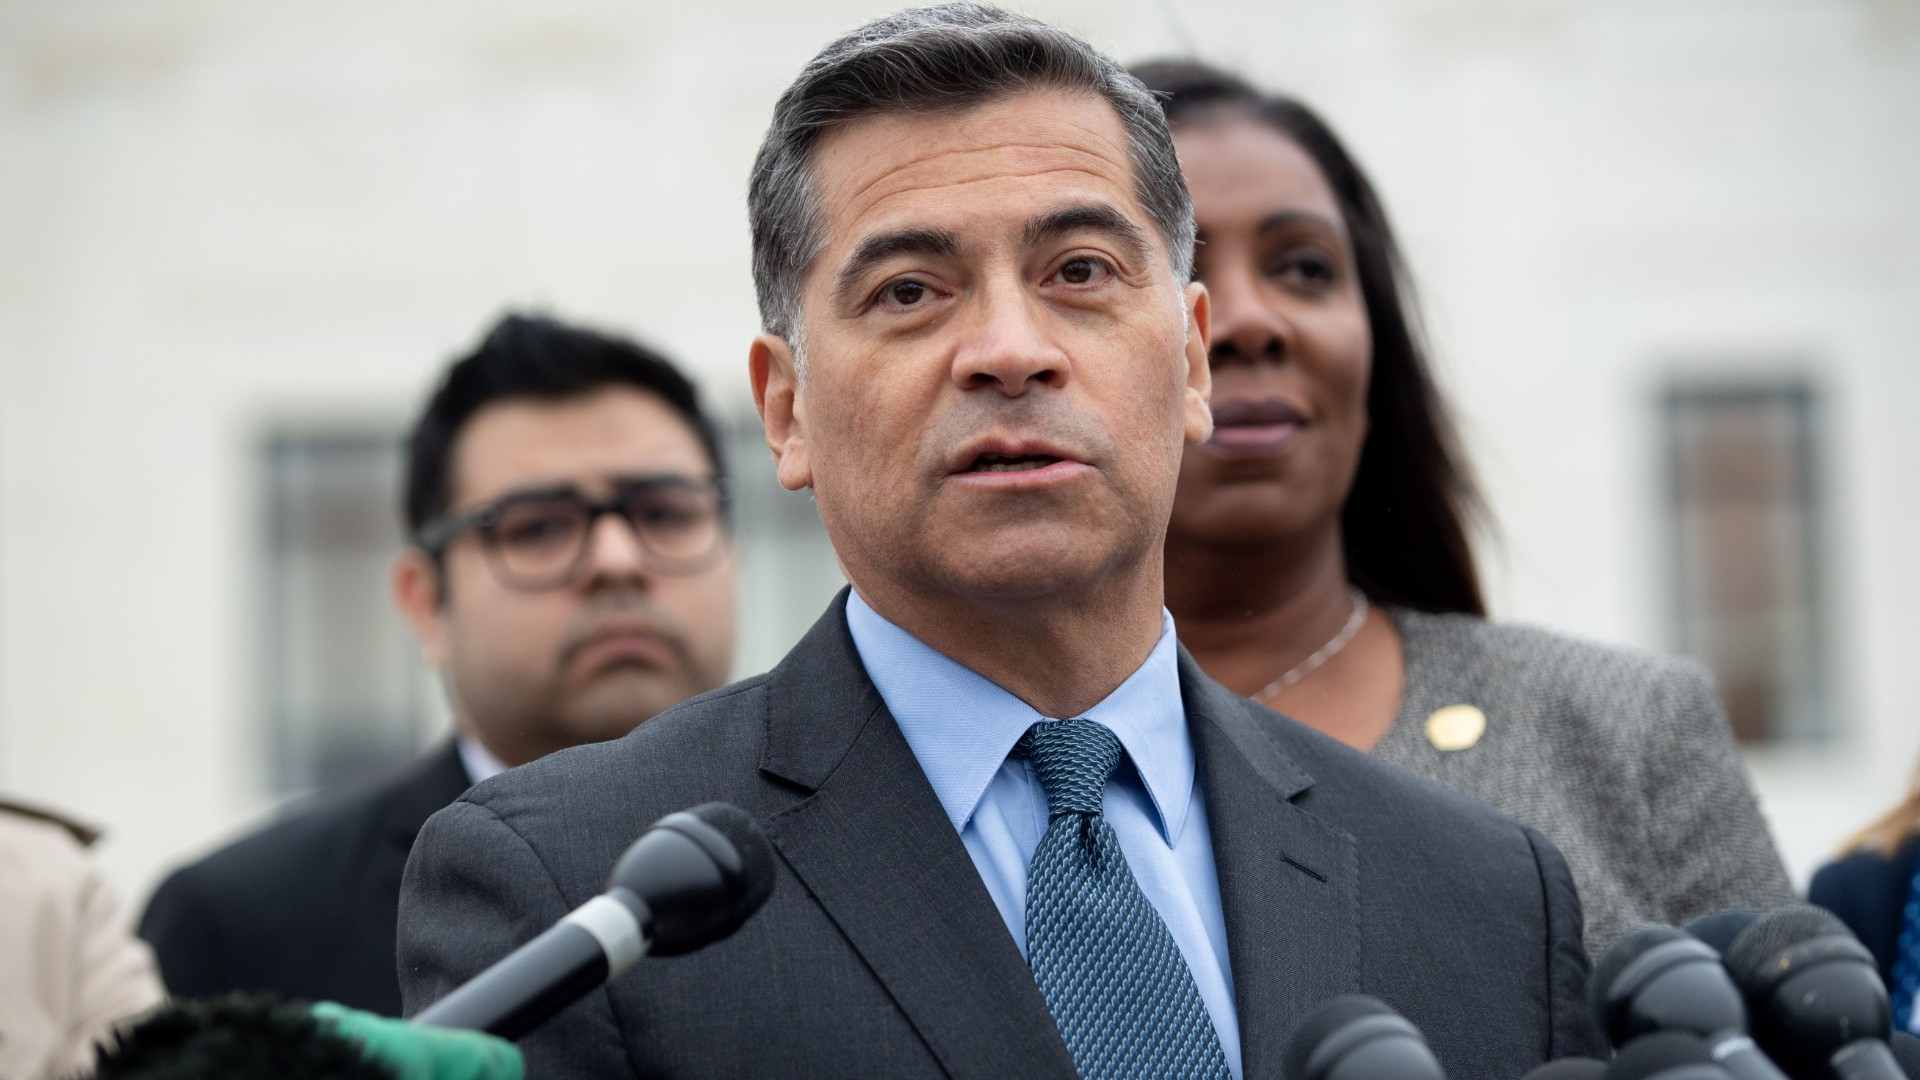 California Attorney General Xavier Becerra speaks following arguments about ending the Deferred Action for Childhood Arrivals program outside the US Supreme Court in Washington, D.C., November 12, 2019 (Saul Loeb/AFP/Getty Images)